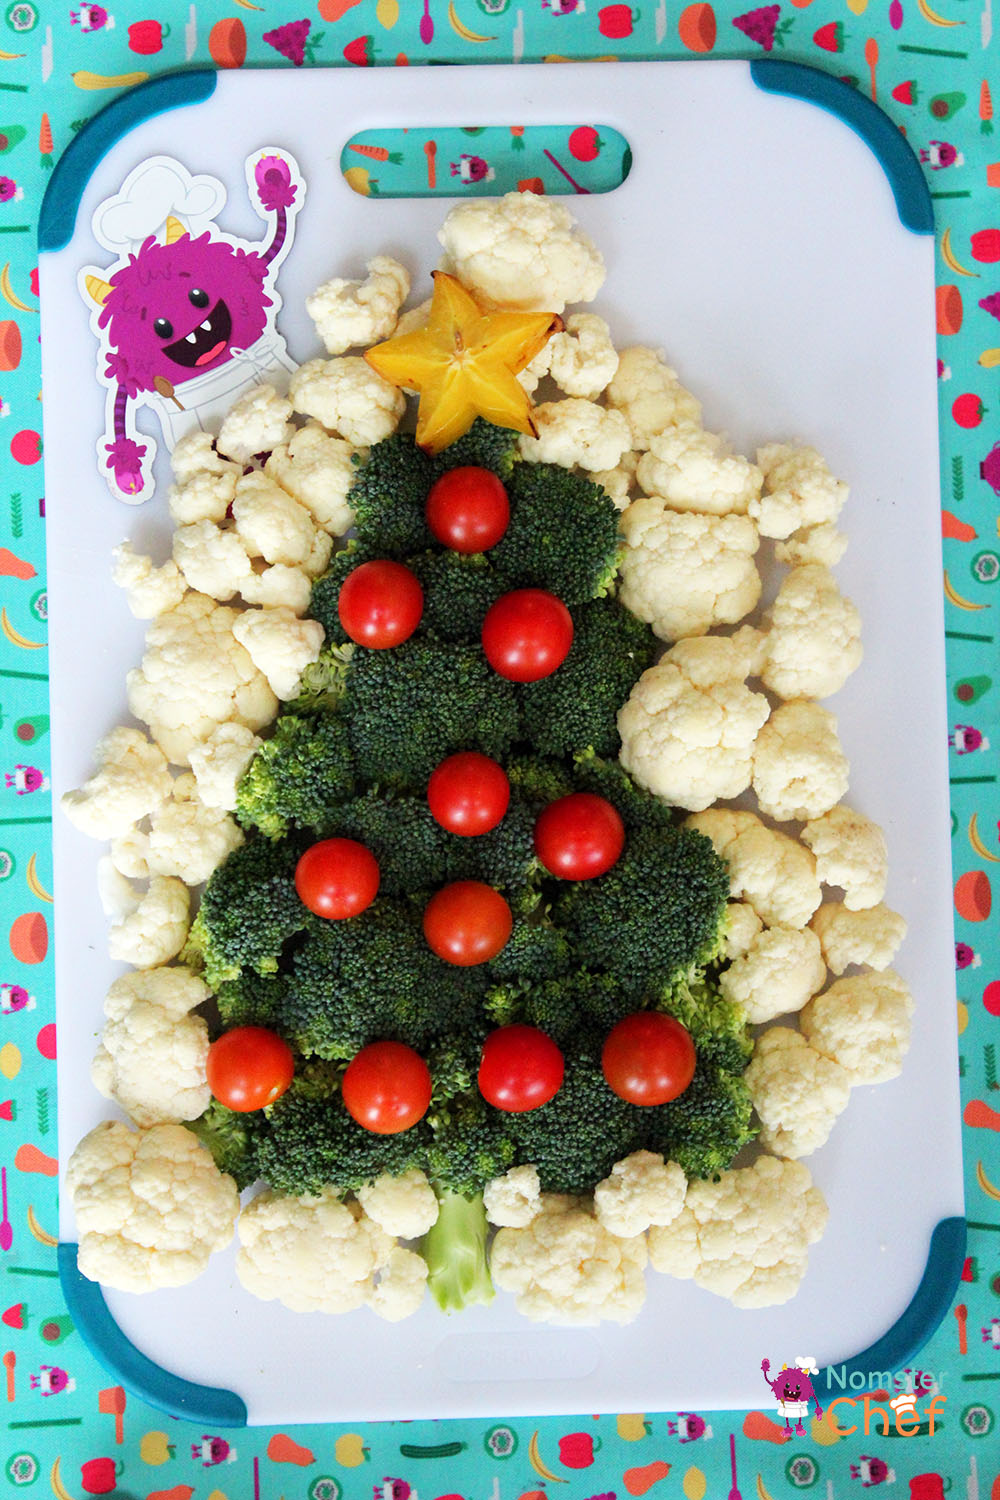 Christmas Recipes For Kids.Nomster Chef Christmas Recipes For Kids To Make Broccoli